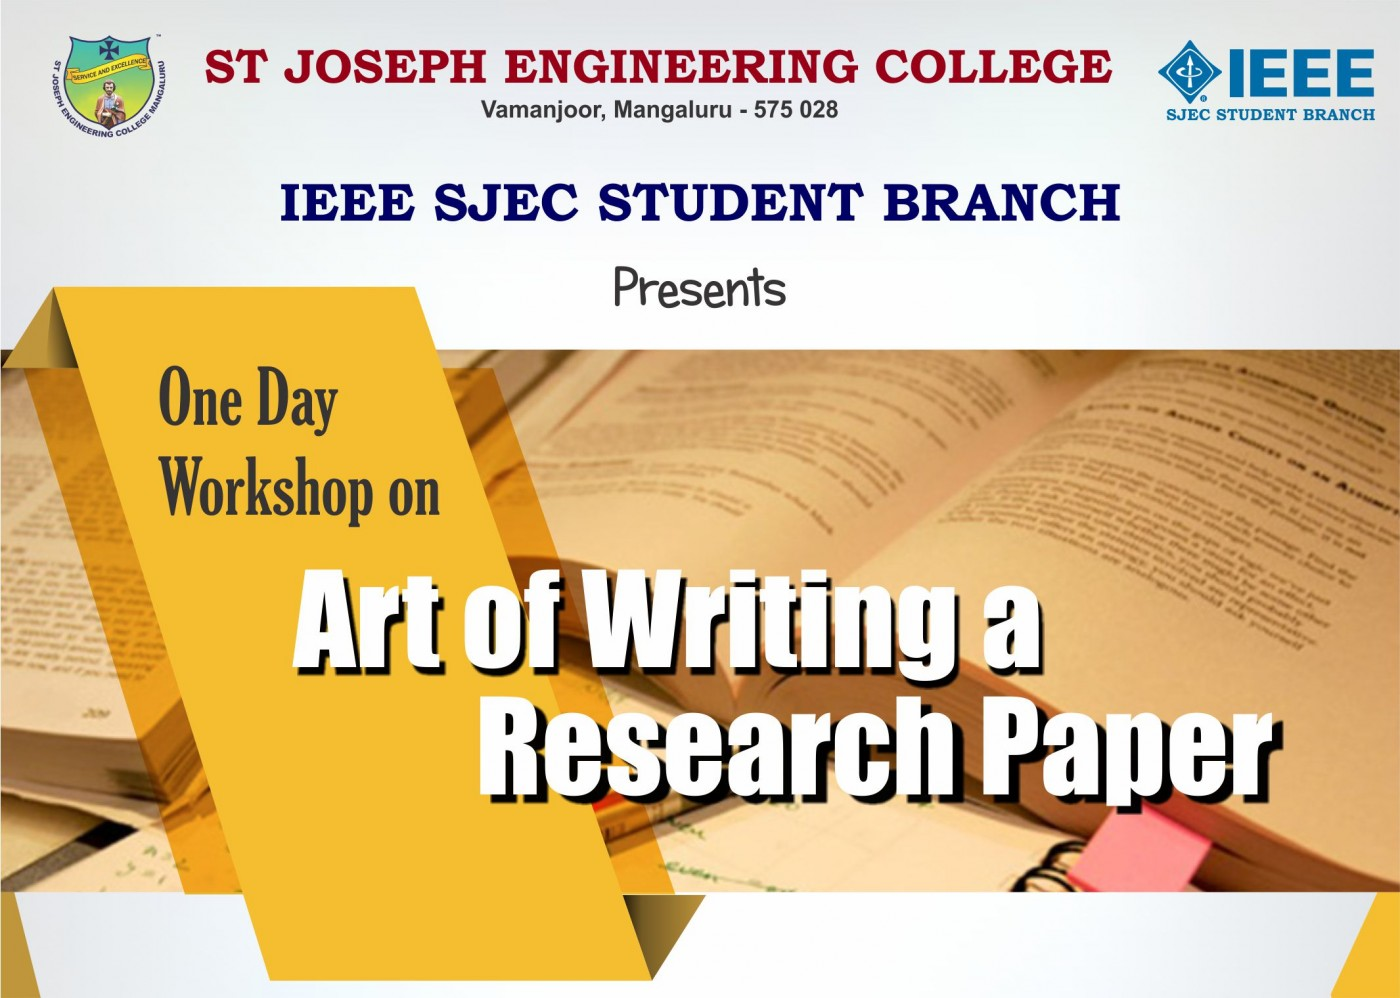 011 Research Paper Writing Workshop Unforgettable Rubric Software Free Download Prompts 1400